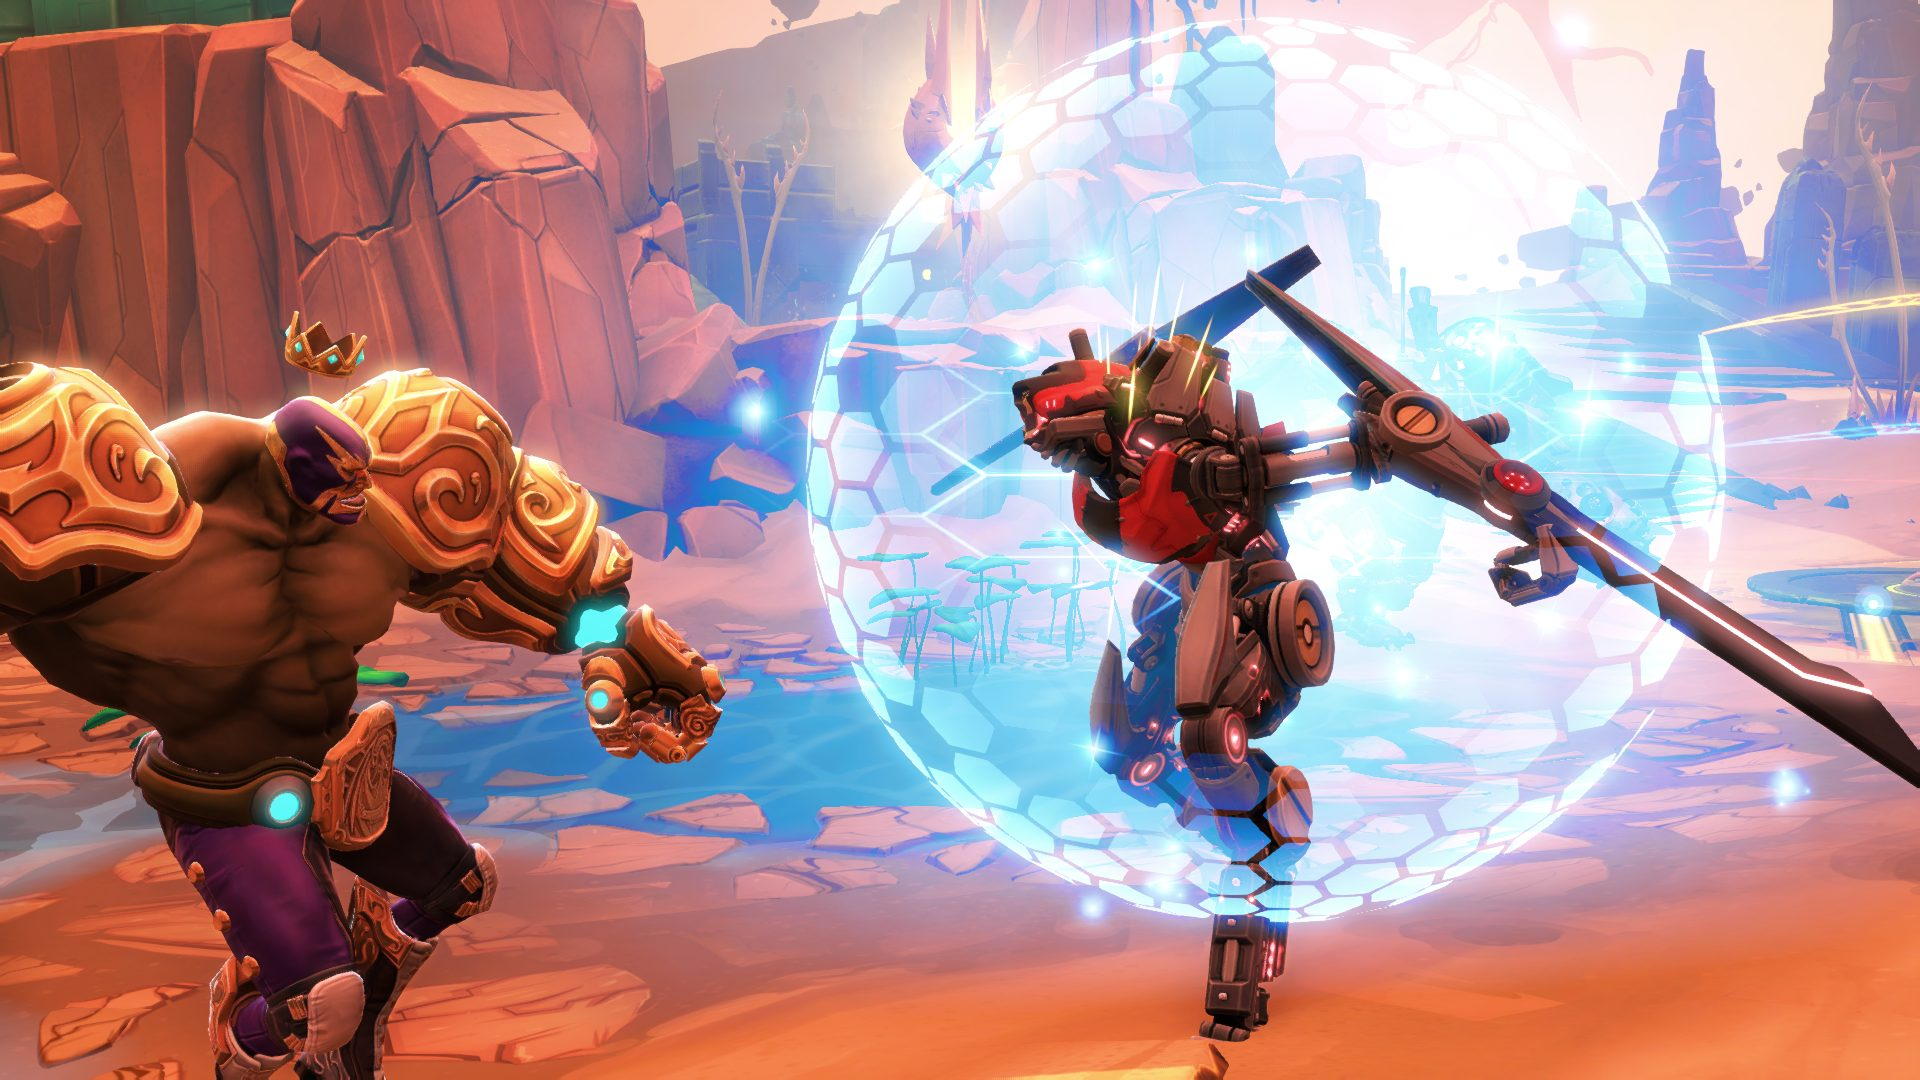 Скриншот  8 - Battleborn (ROW) steam key